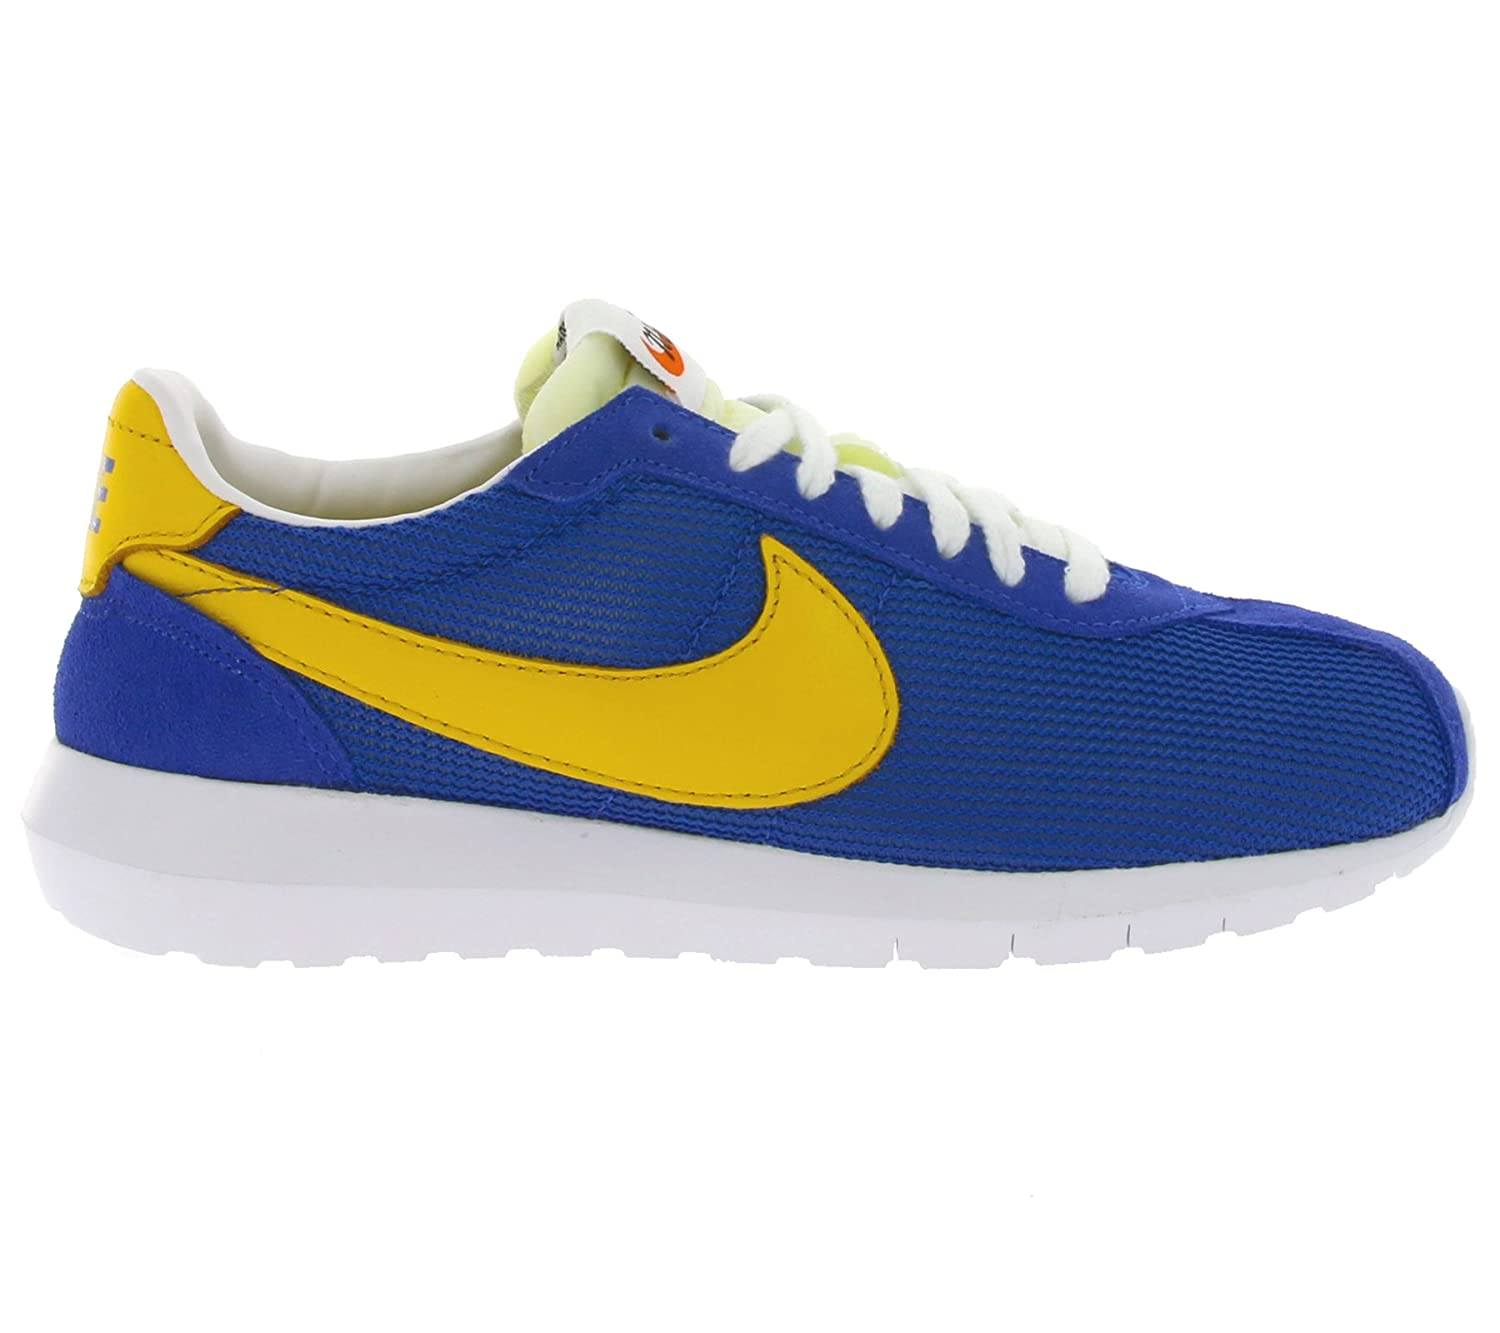 on sale a7c8d 2fc6e Amazon.com   NIKE Womens Roshe LD-1000 QS Running Shoes   Road Running